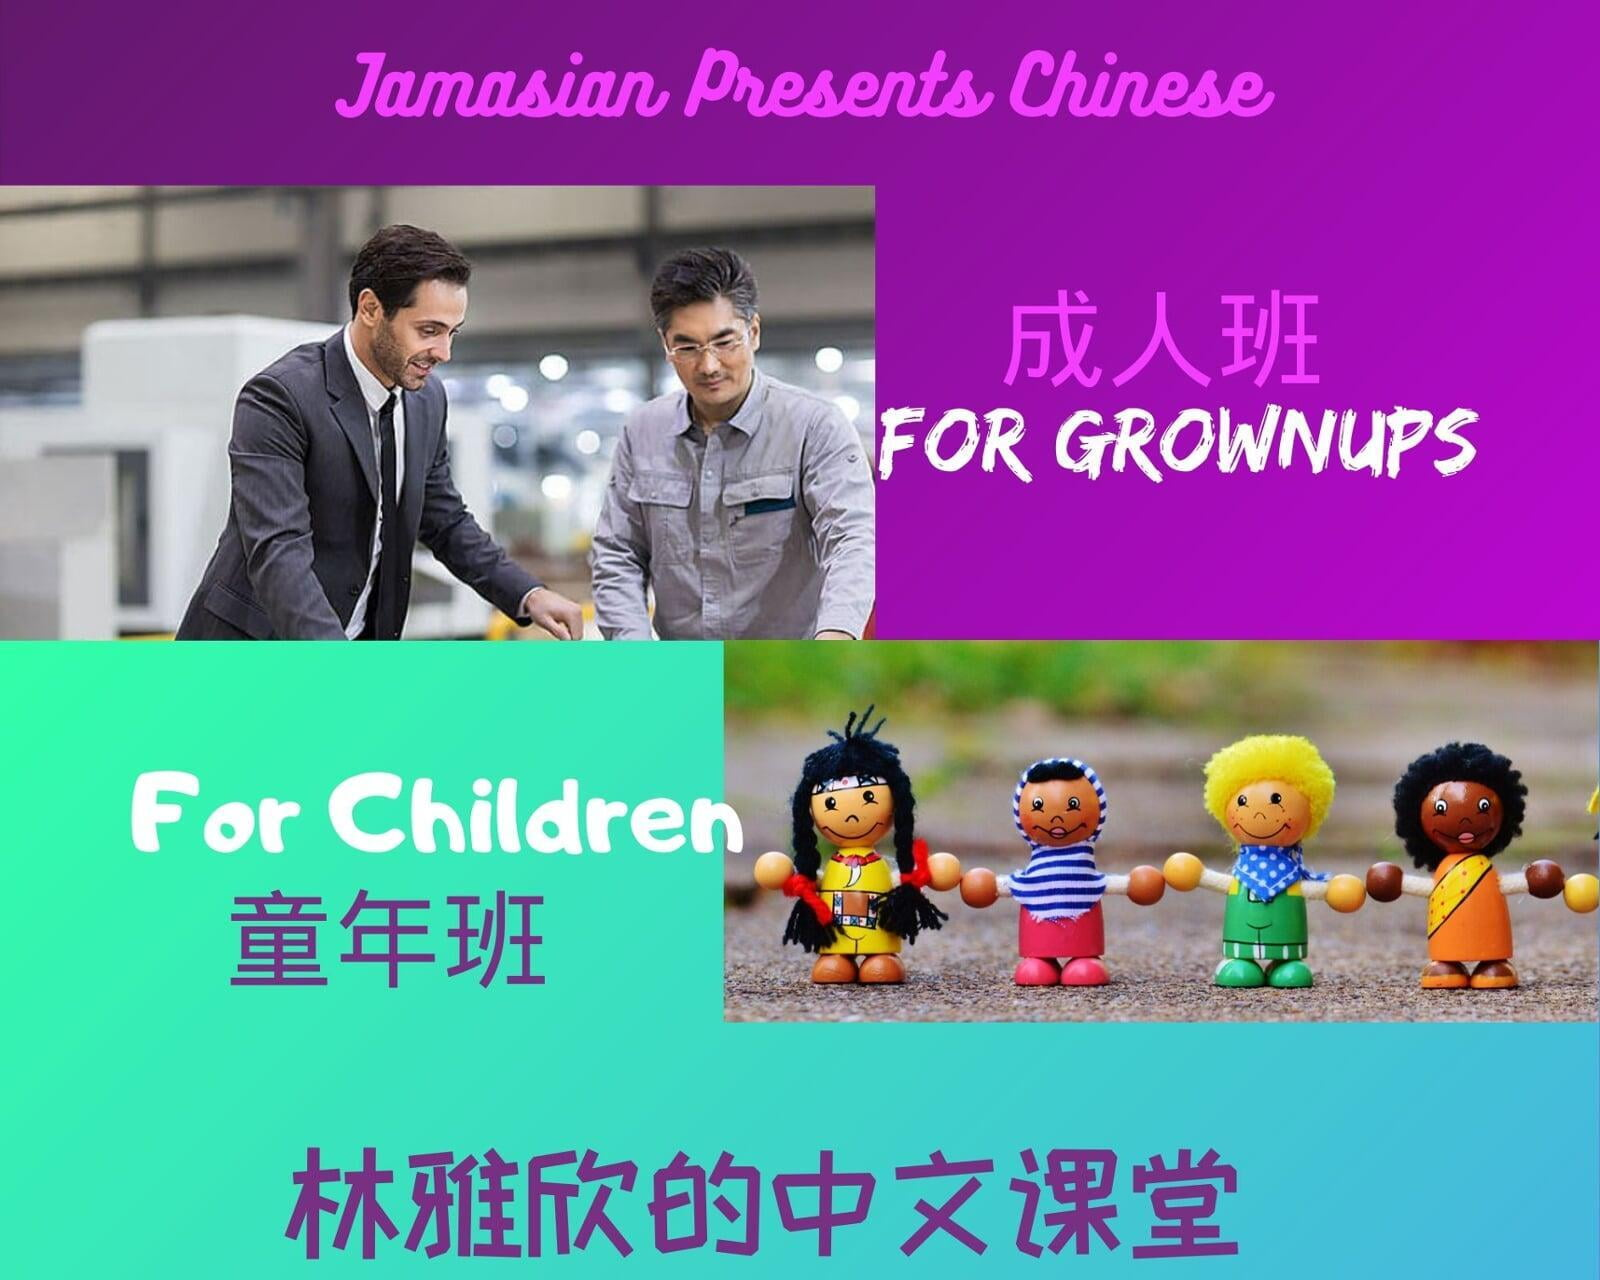 Two adults and diverse dolls symbolizing Chinese language benefits